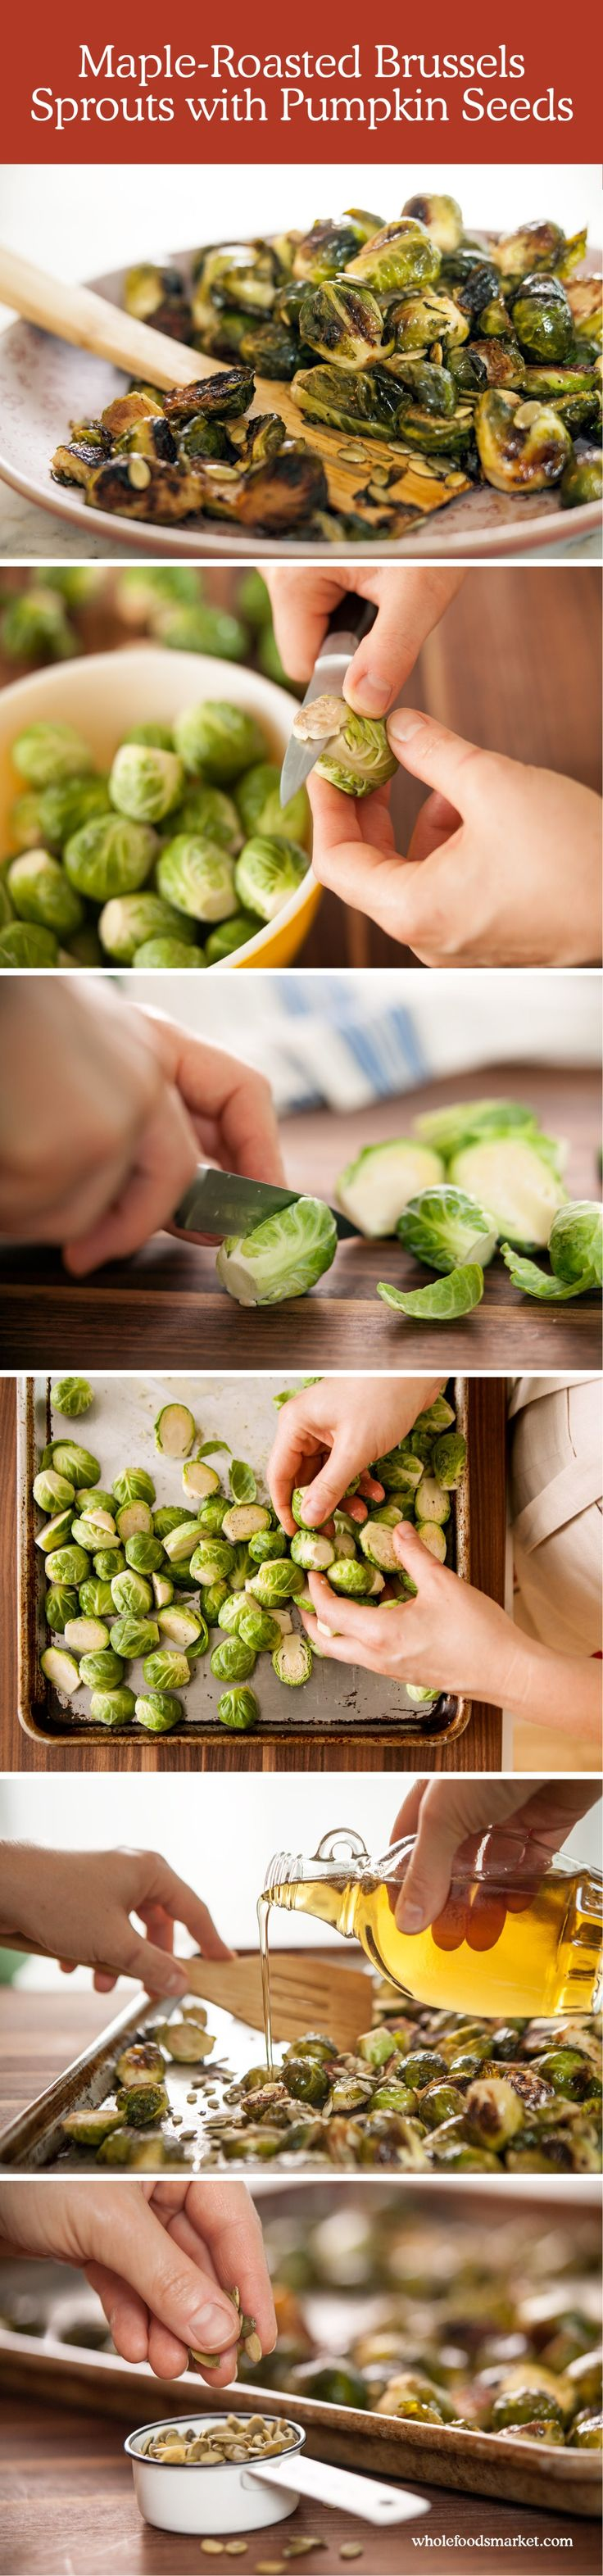 Maple-Roasted Brussels Sprouts with Pumpkin Seeds // Step-by-Step Recipe // Holiday How To // Whole Foods Market